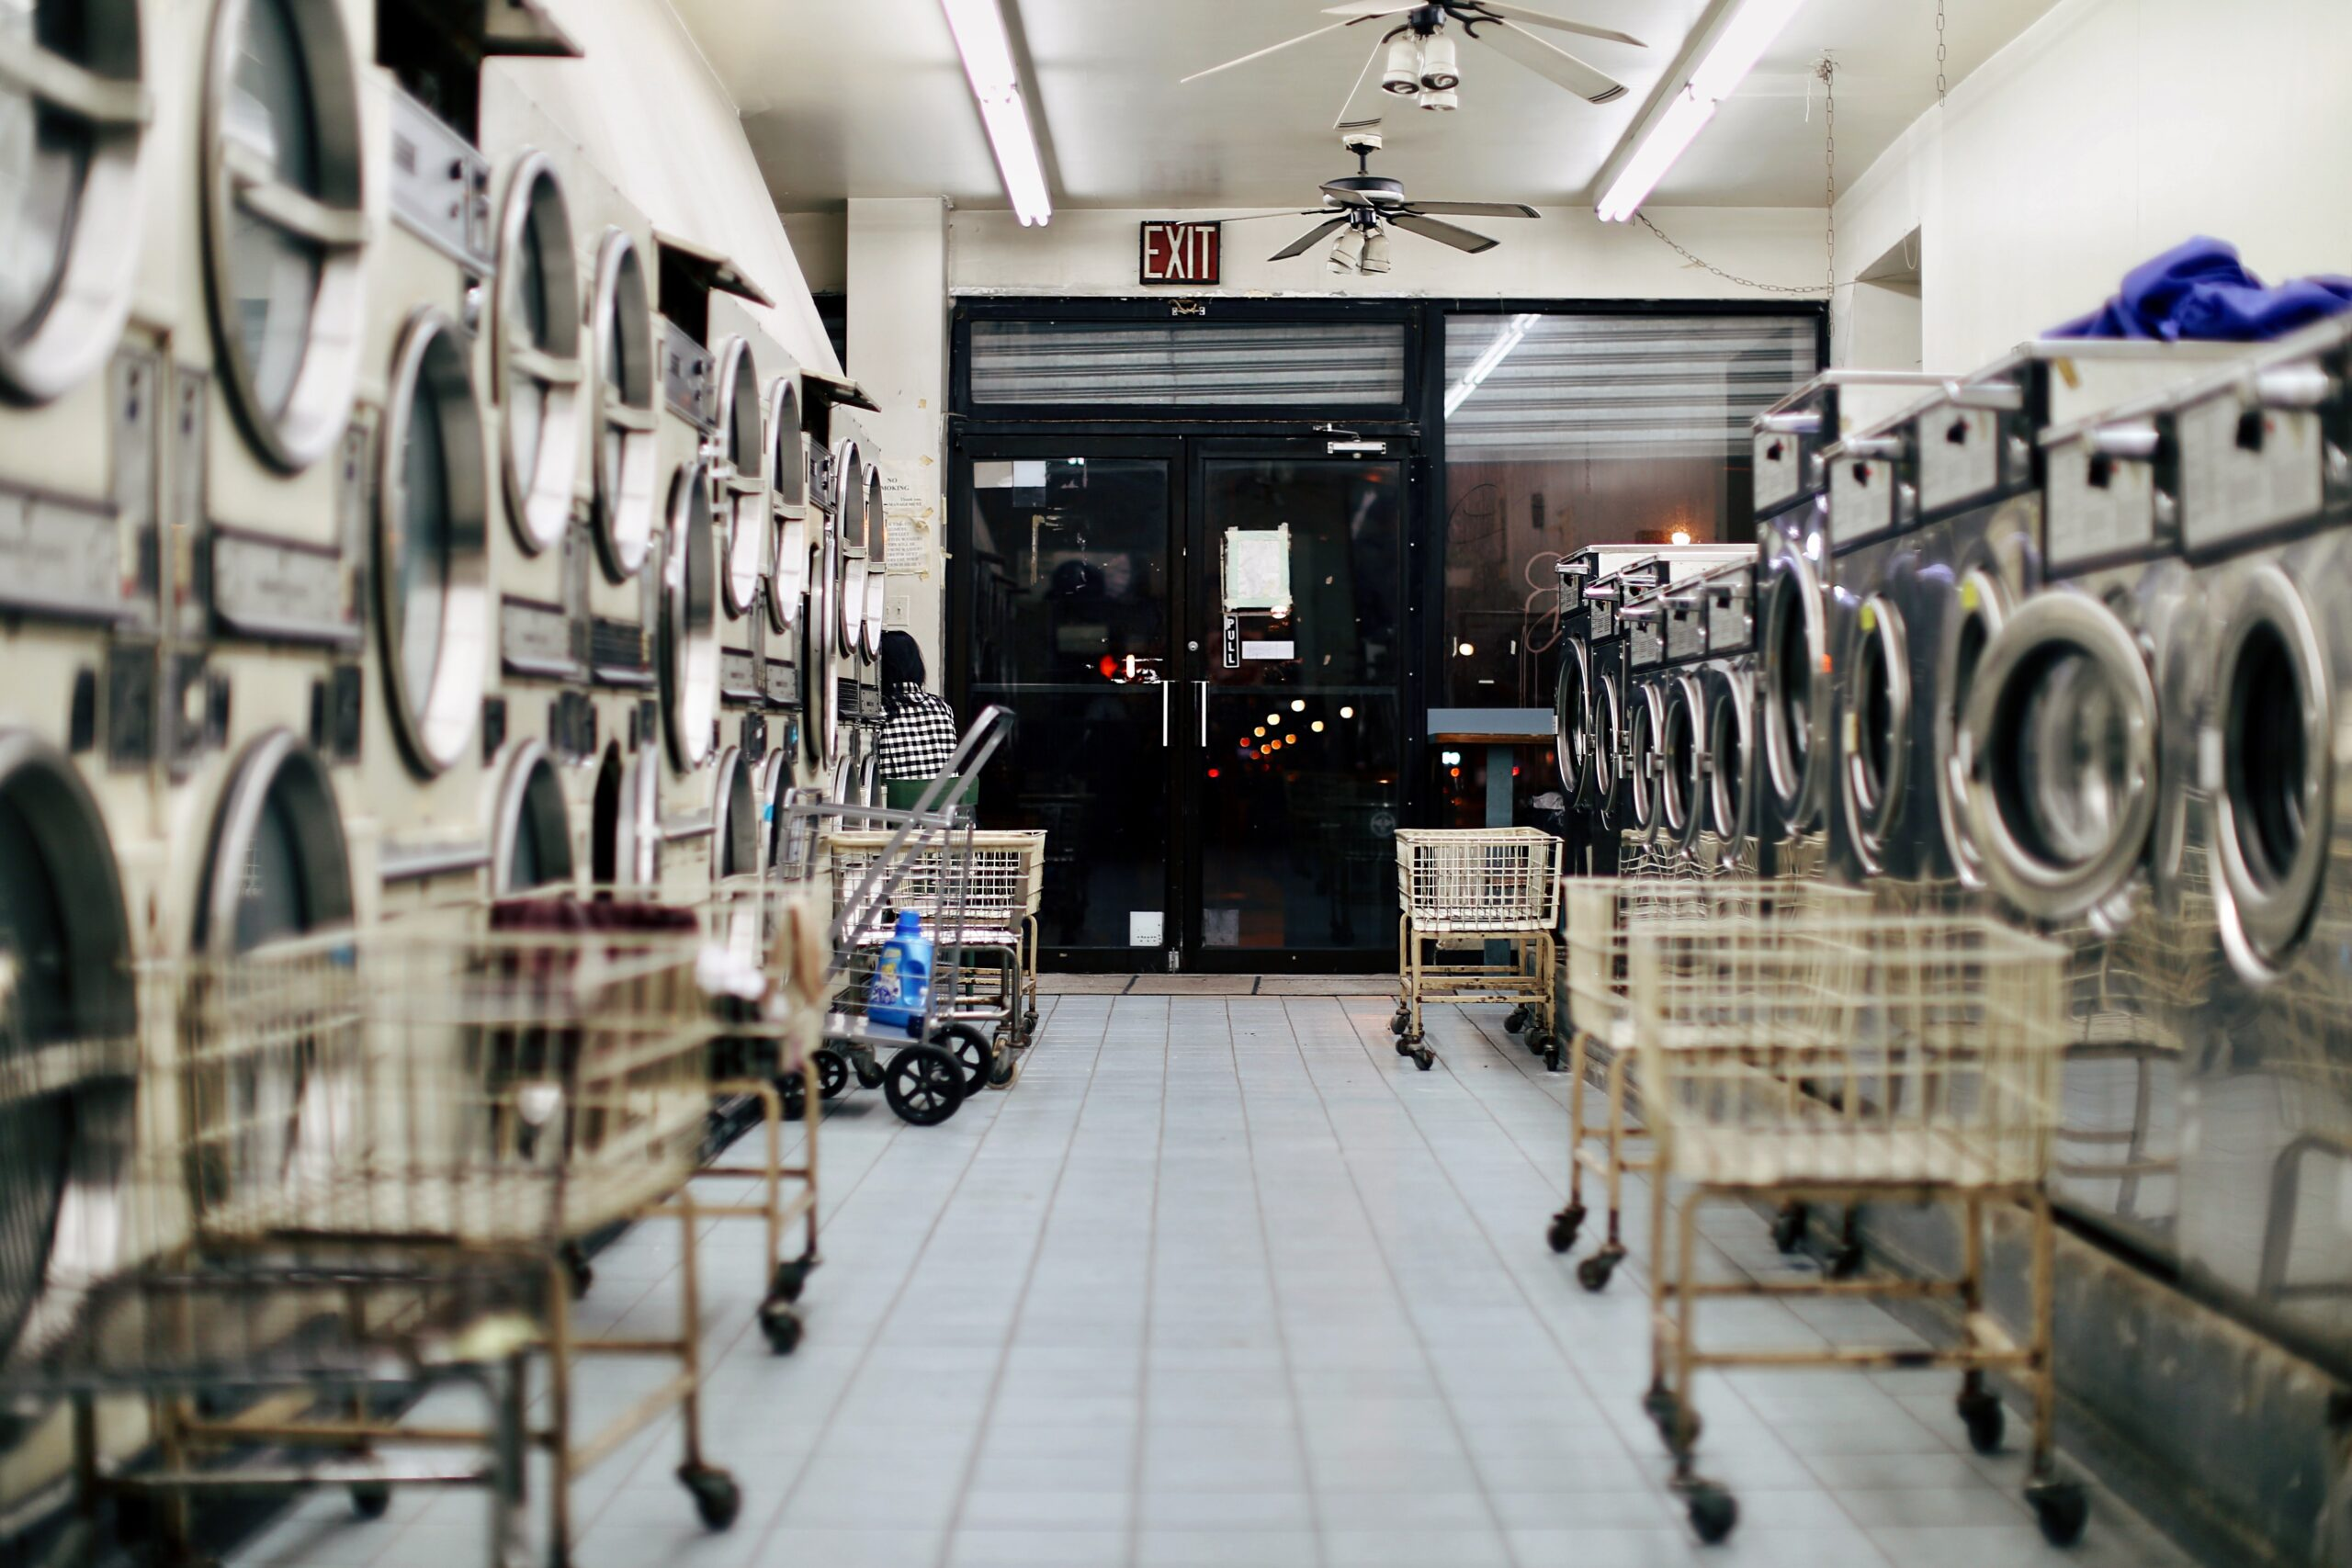 bianca-jordan-Laundry Mat lane with stacked machines on either side and carts lined up against machines-unsplash